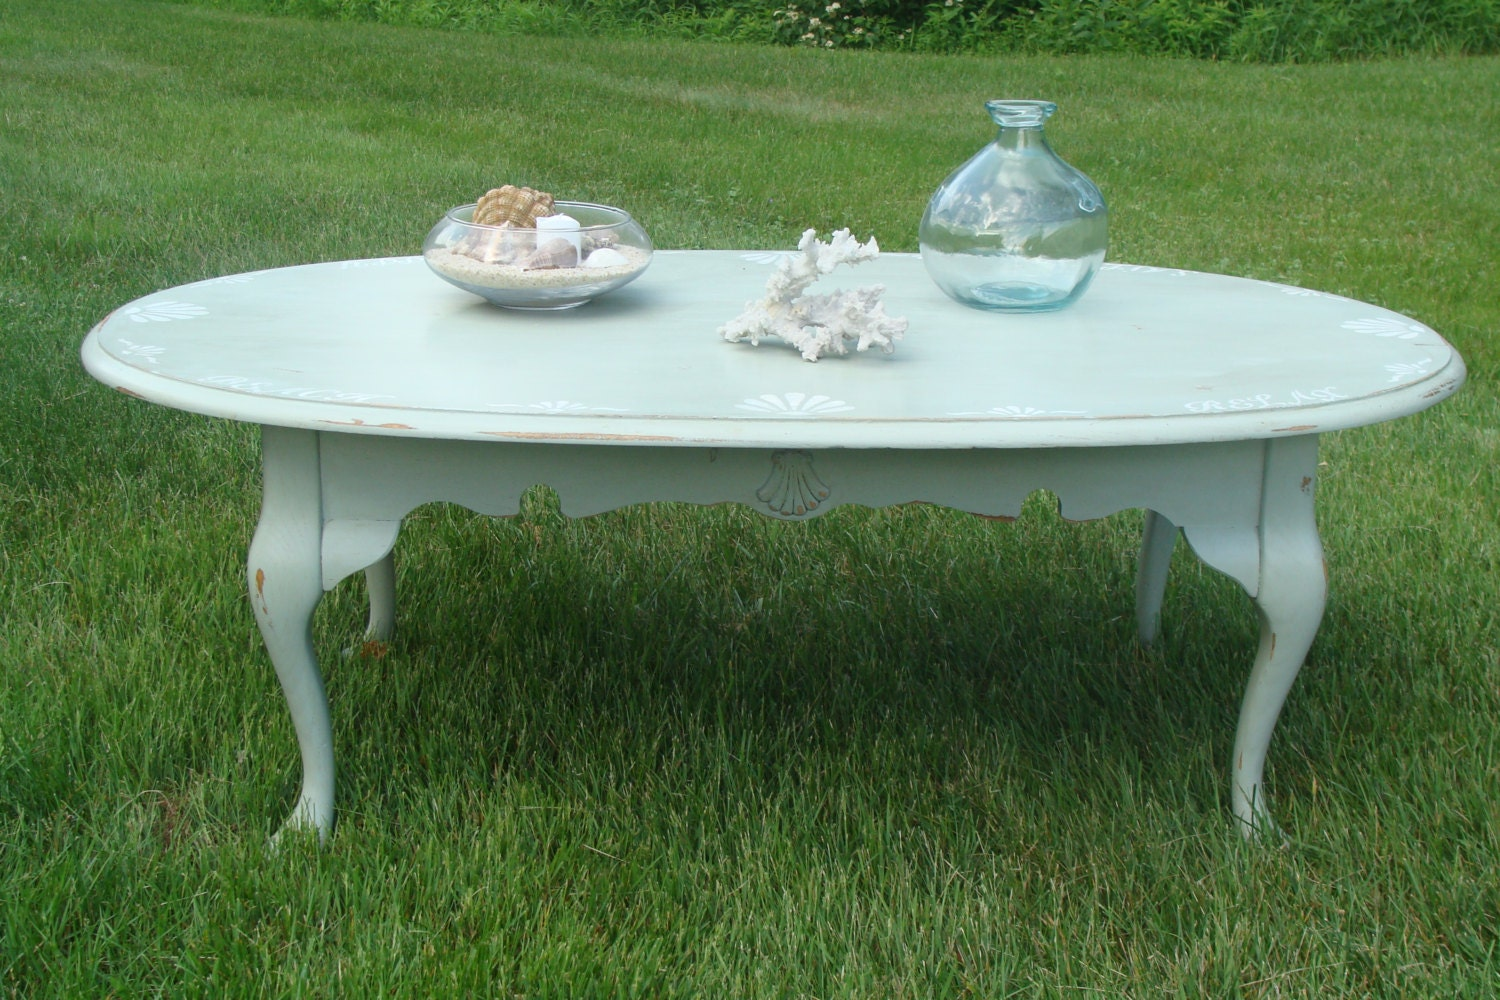 beach cottage queen anne style coffee table by pattisfinds on etsy. Black Bedroom Furniture Sets. Home Design Ideas